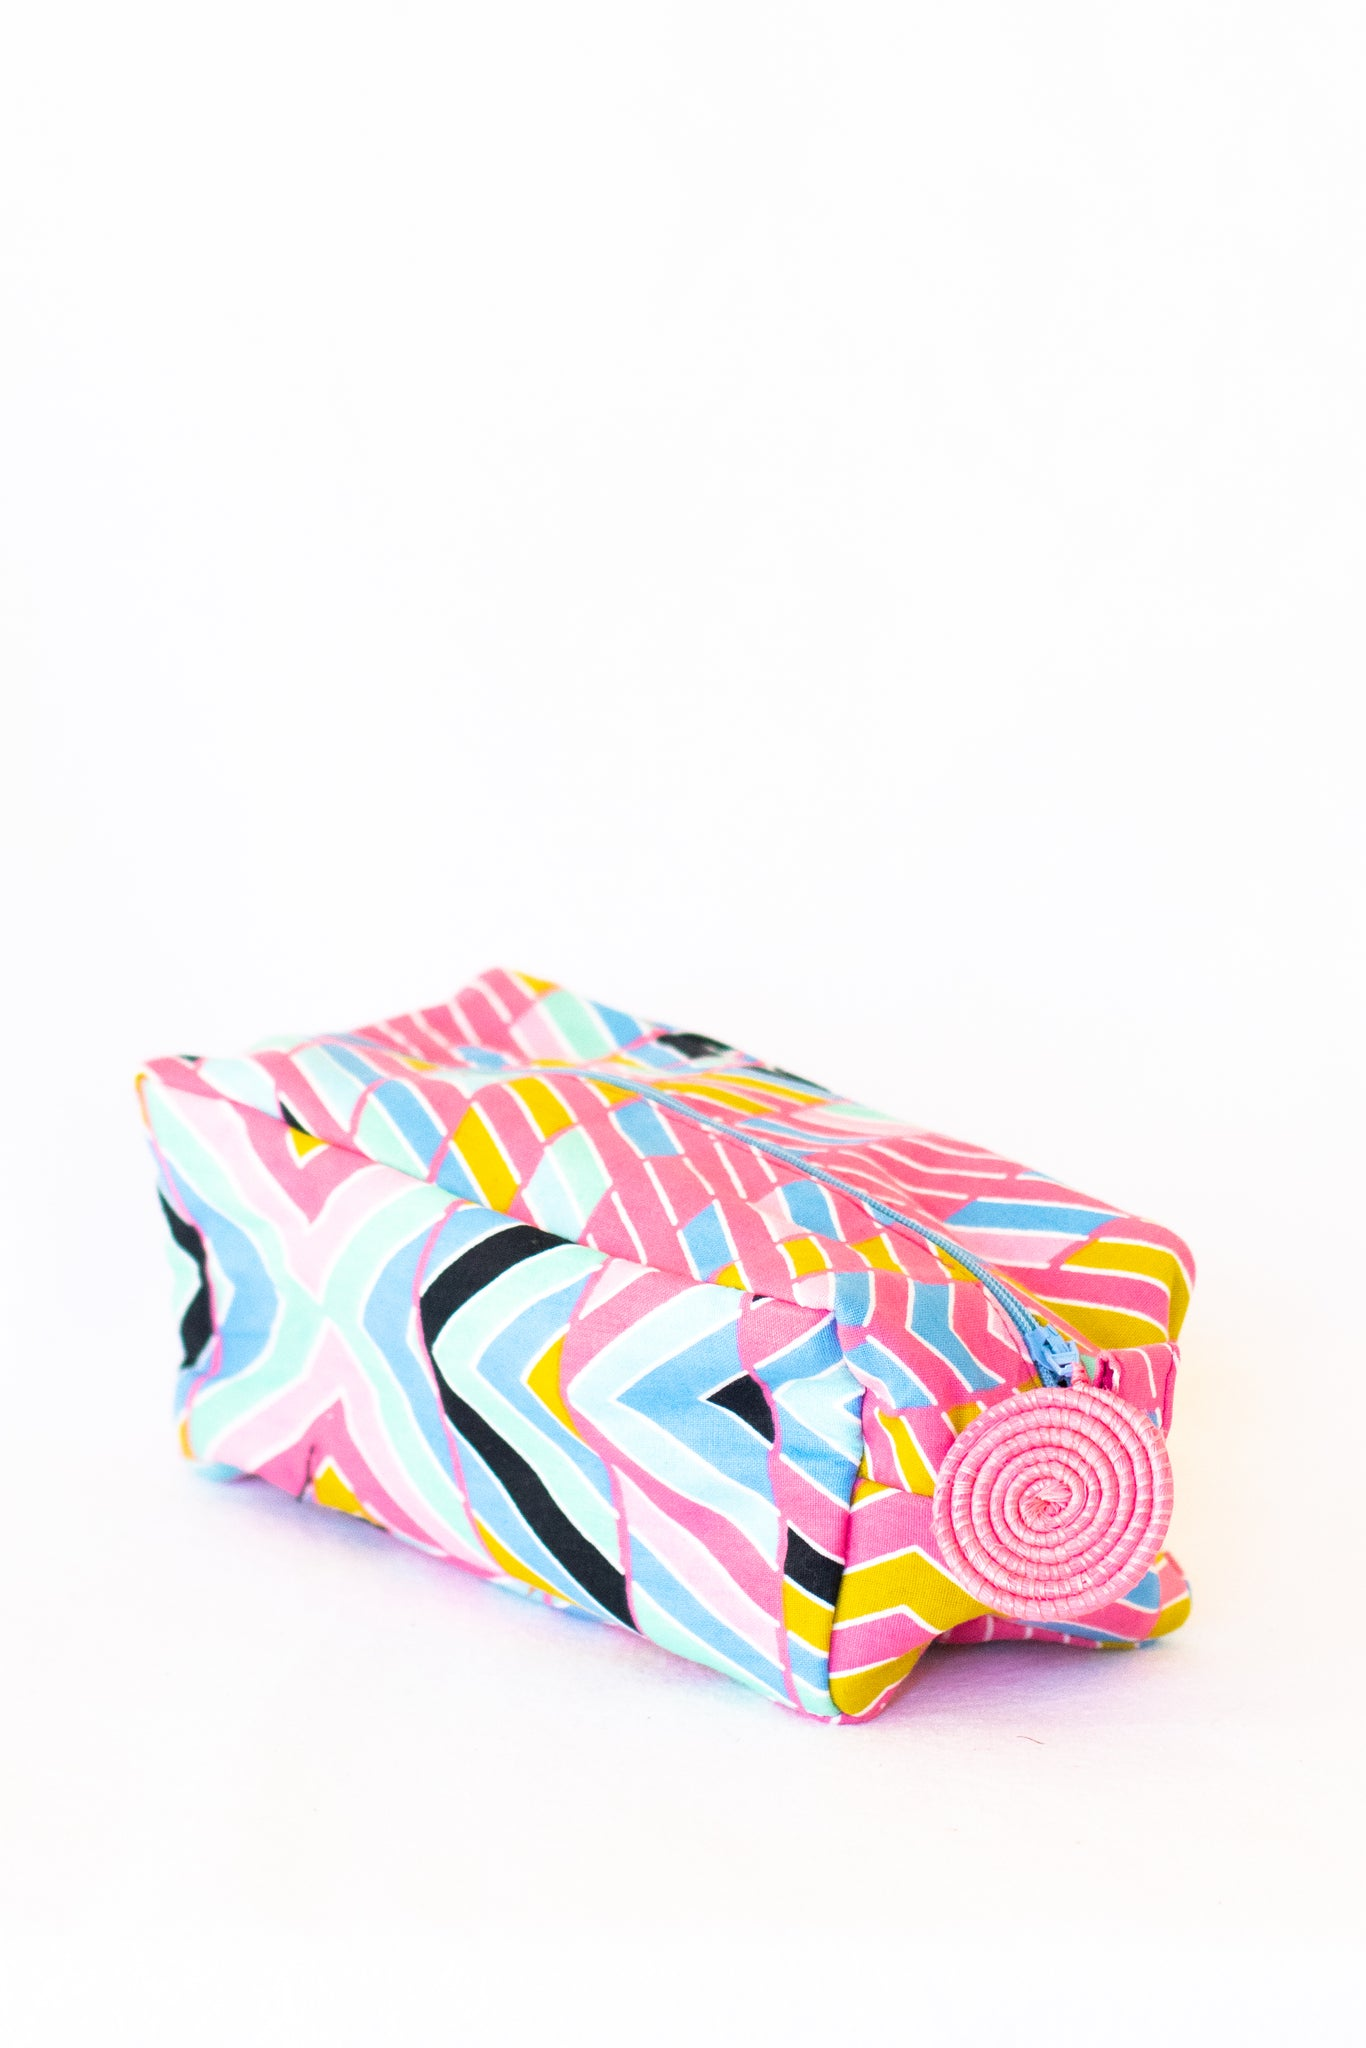 Kitenge Zipper Case, Summer